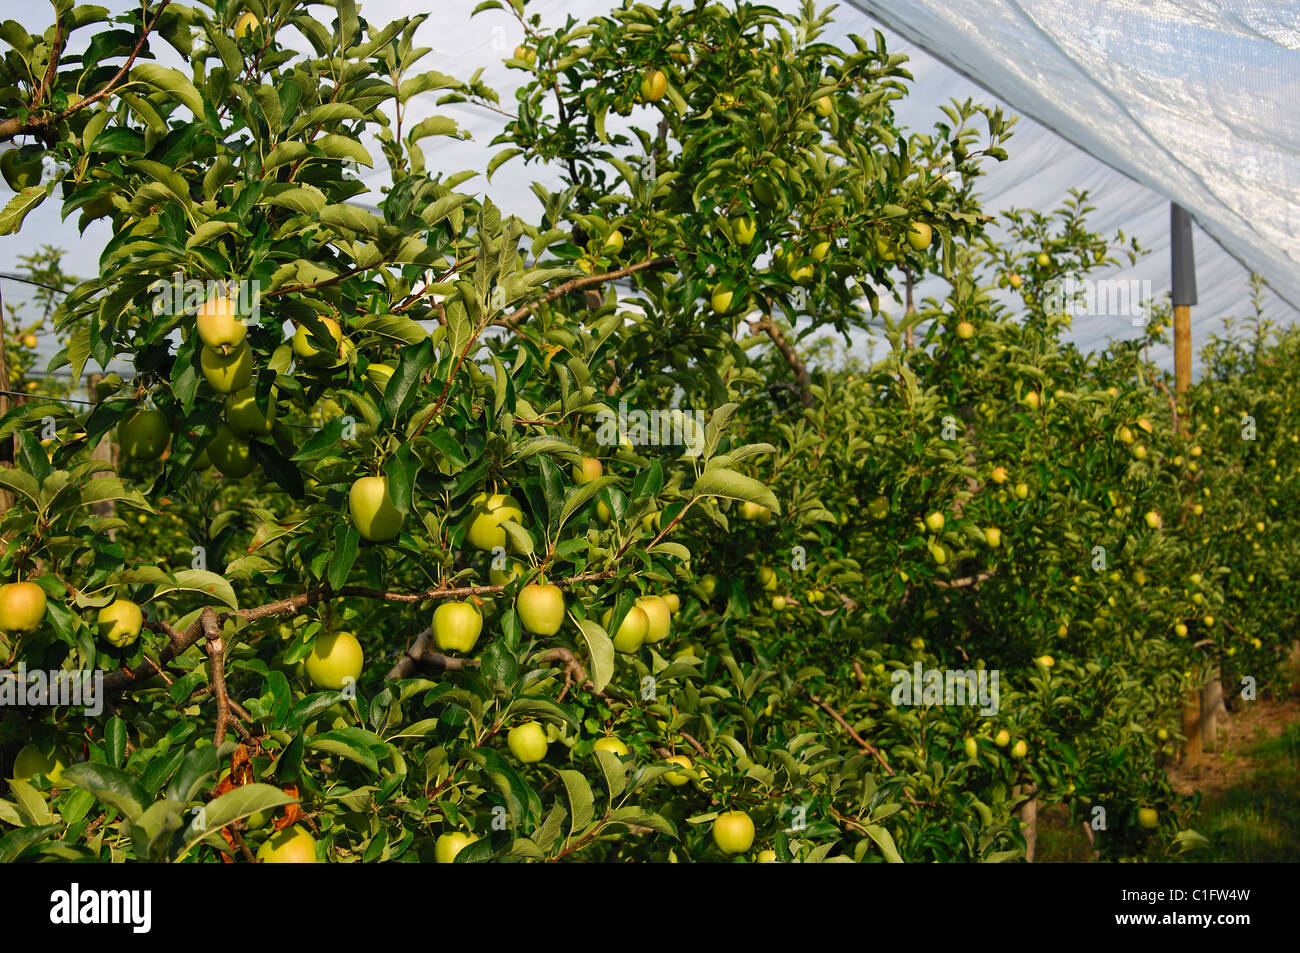 Unripe Apples On Espalier Trees Of An Apple Tree Plantation